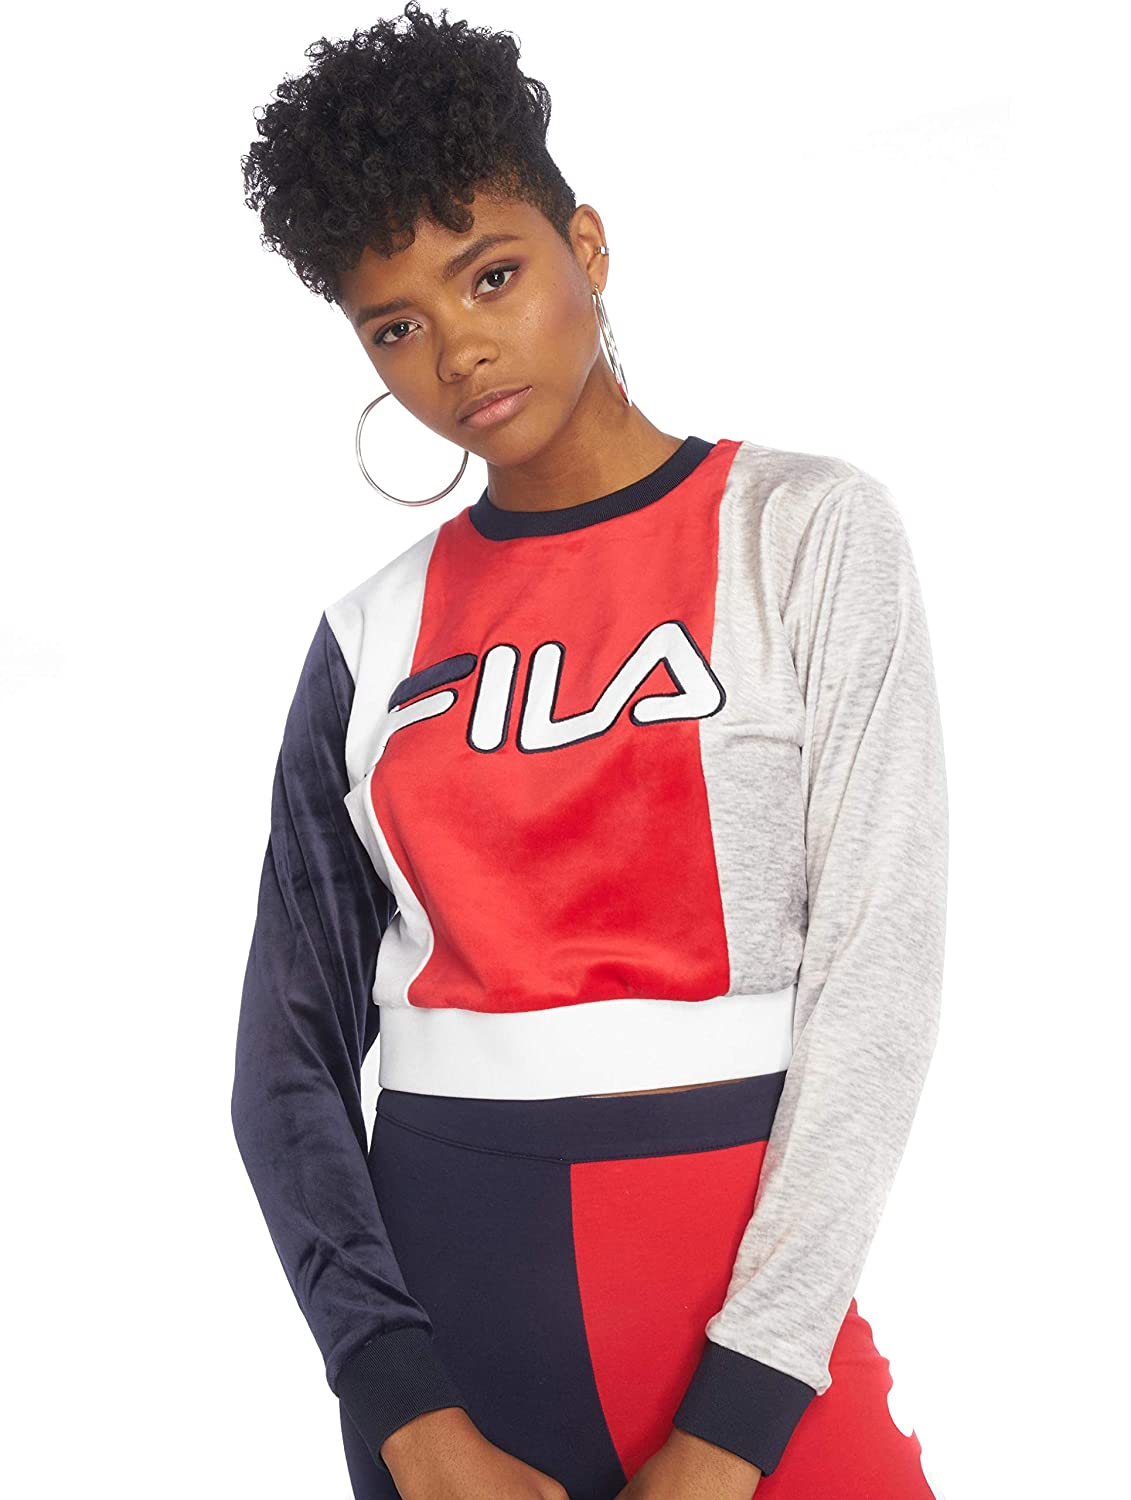 TALLA M. Fila Felpa Donna Women Antonietta volour Colour Block Crop Sweat 684243 002